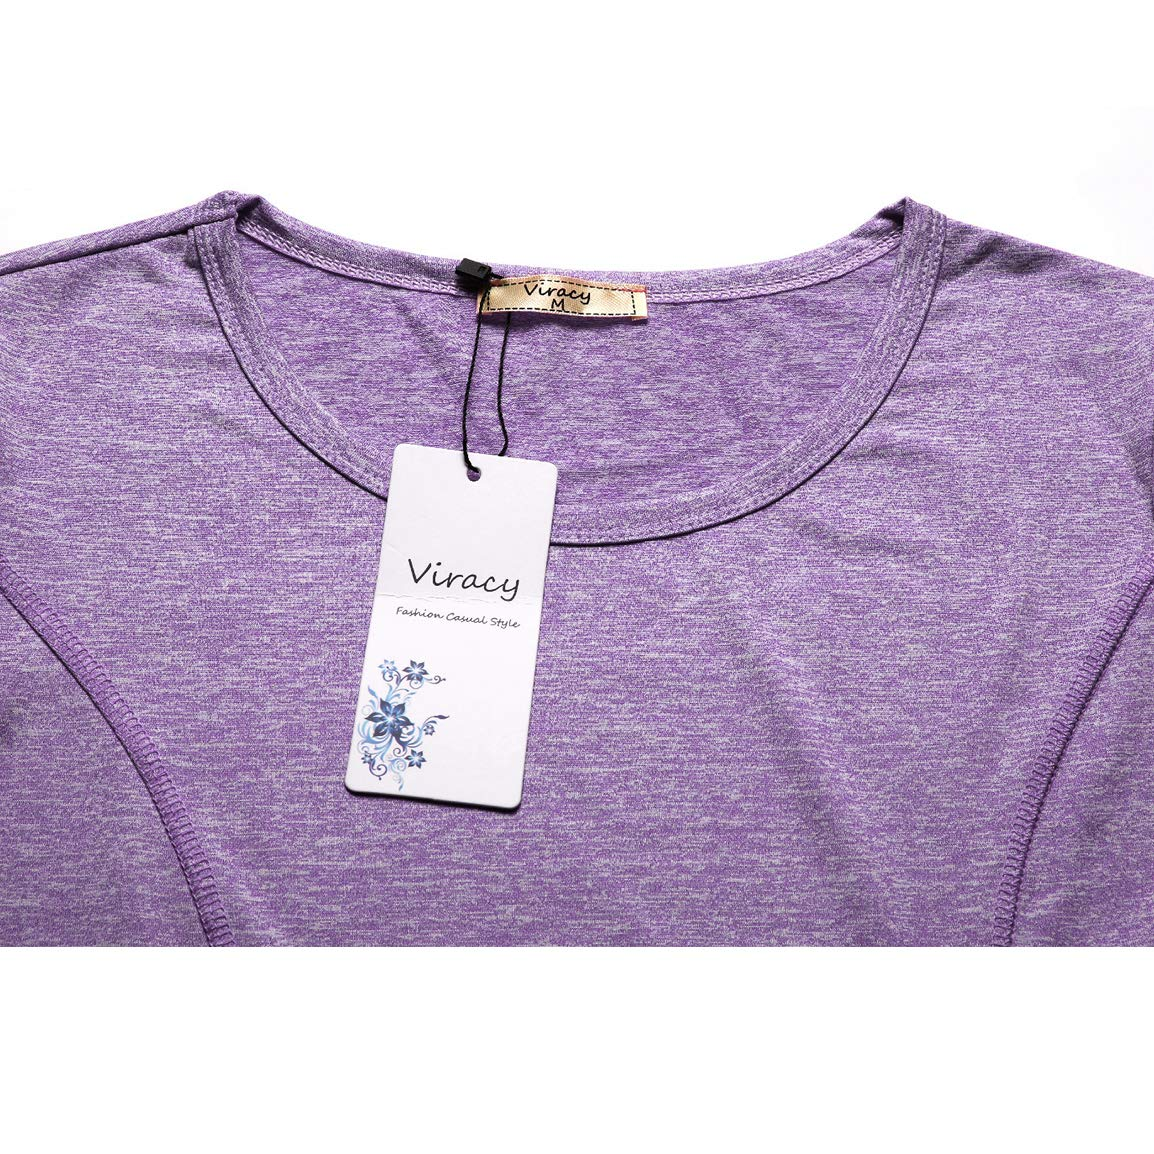 shirt VC006 Viracy Womens Long Sleeve Yoga Tops Exercise Shirts Ladies Long Sleeve Activewear Running Workout Shirt Athleisure Wear for Women Sport Exercise X-Large Purple